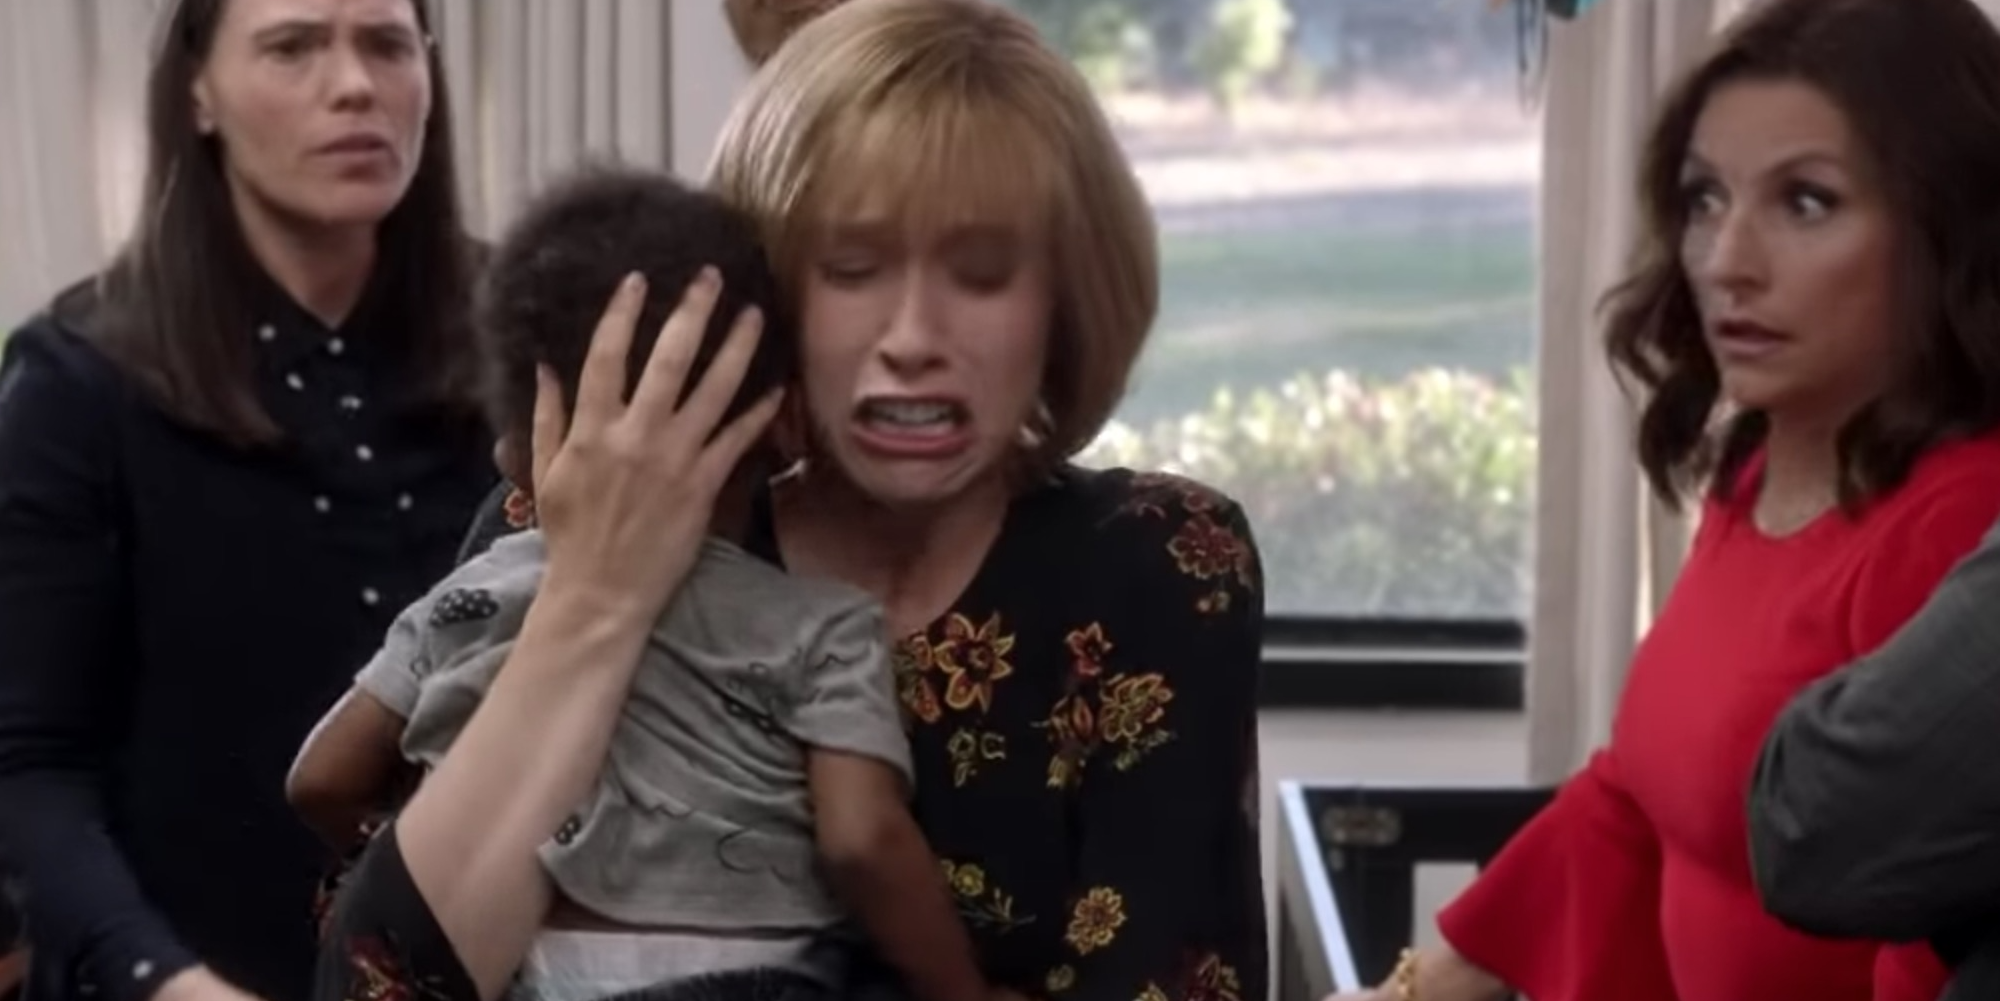 Pop Culture Fix: Veep's Lesbian Daughter Gets Sad Mainstream Lifestyle Haircut and Other Stories